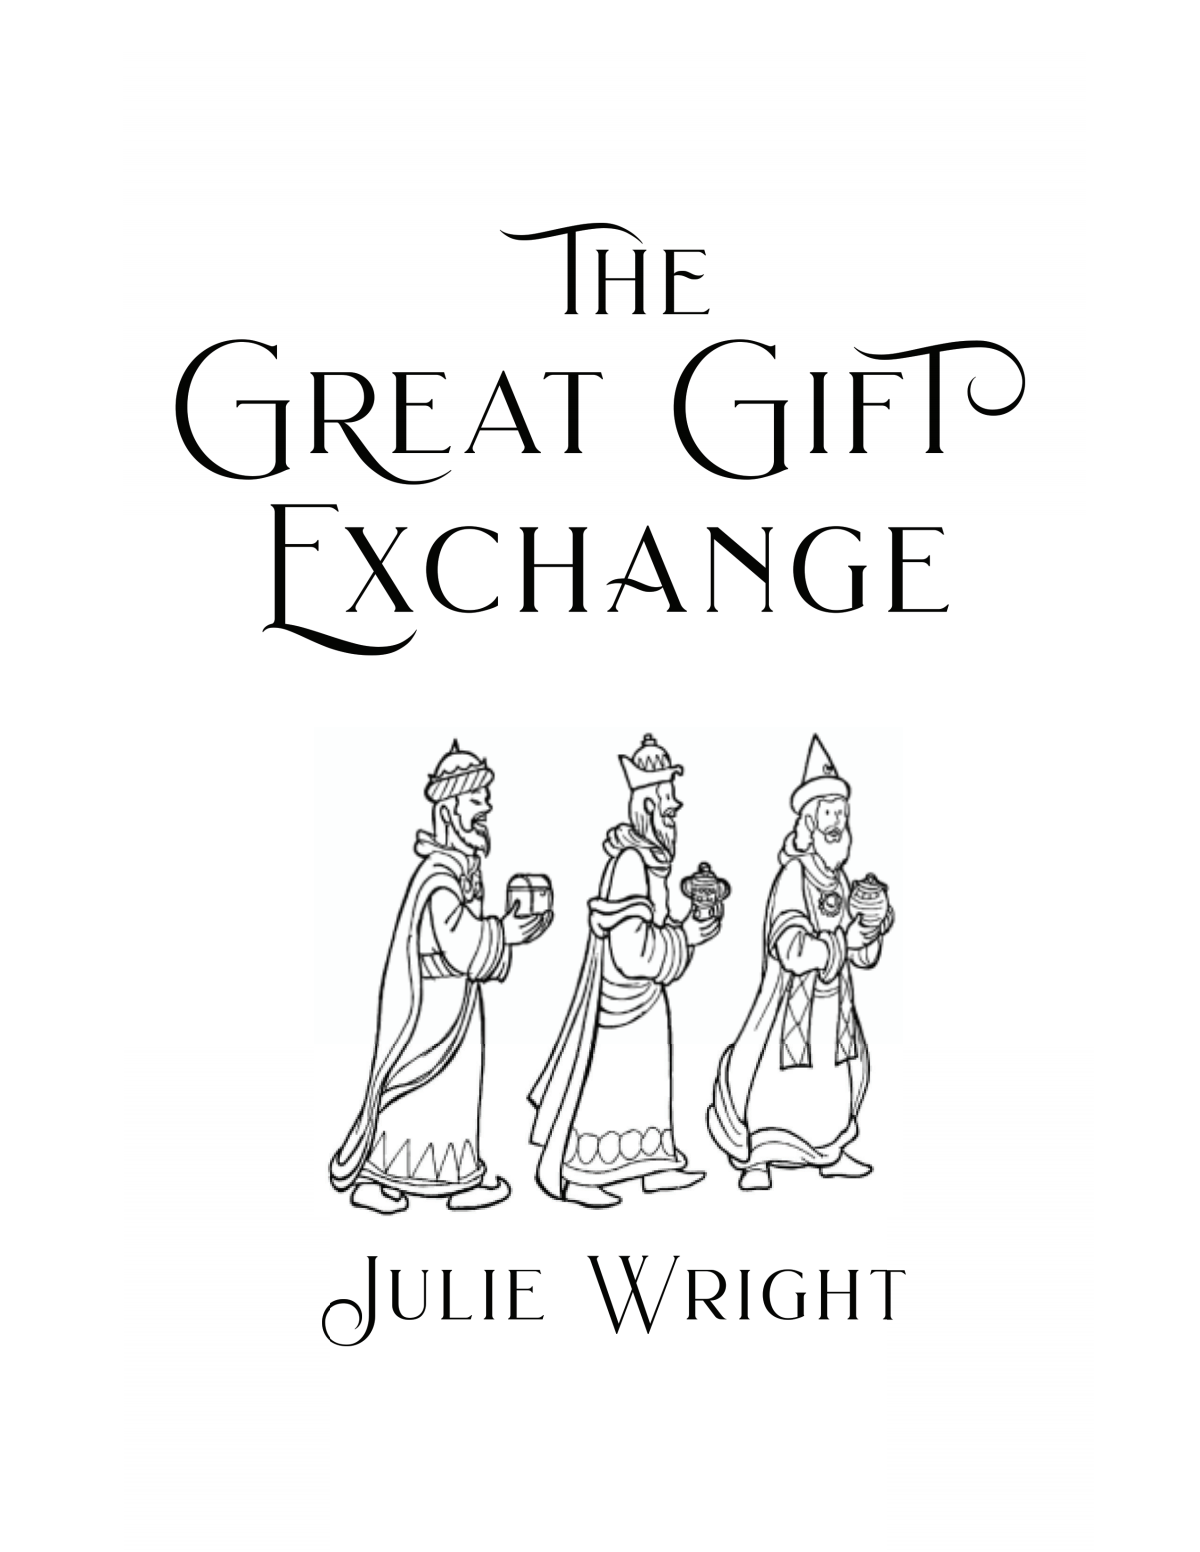 the Great Gift Exchange